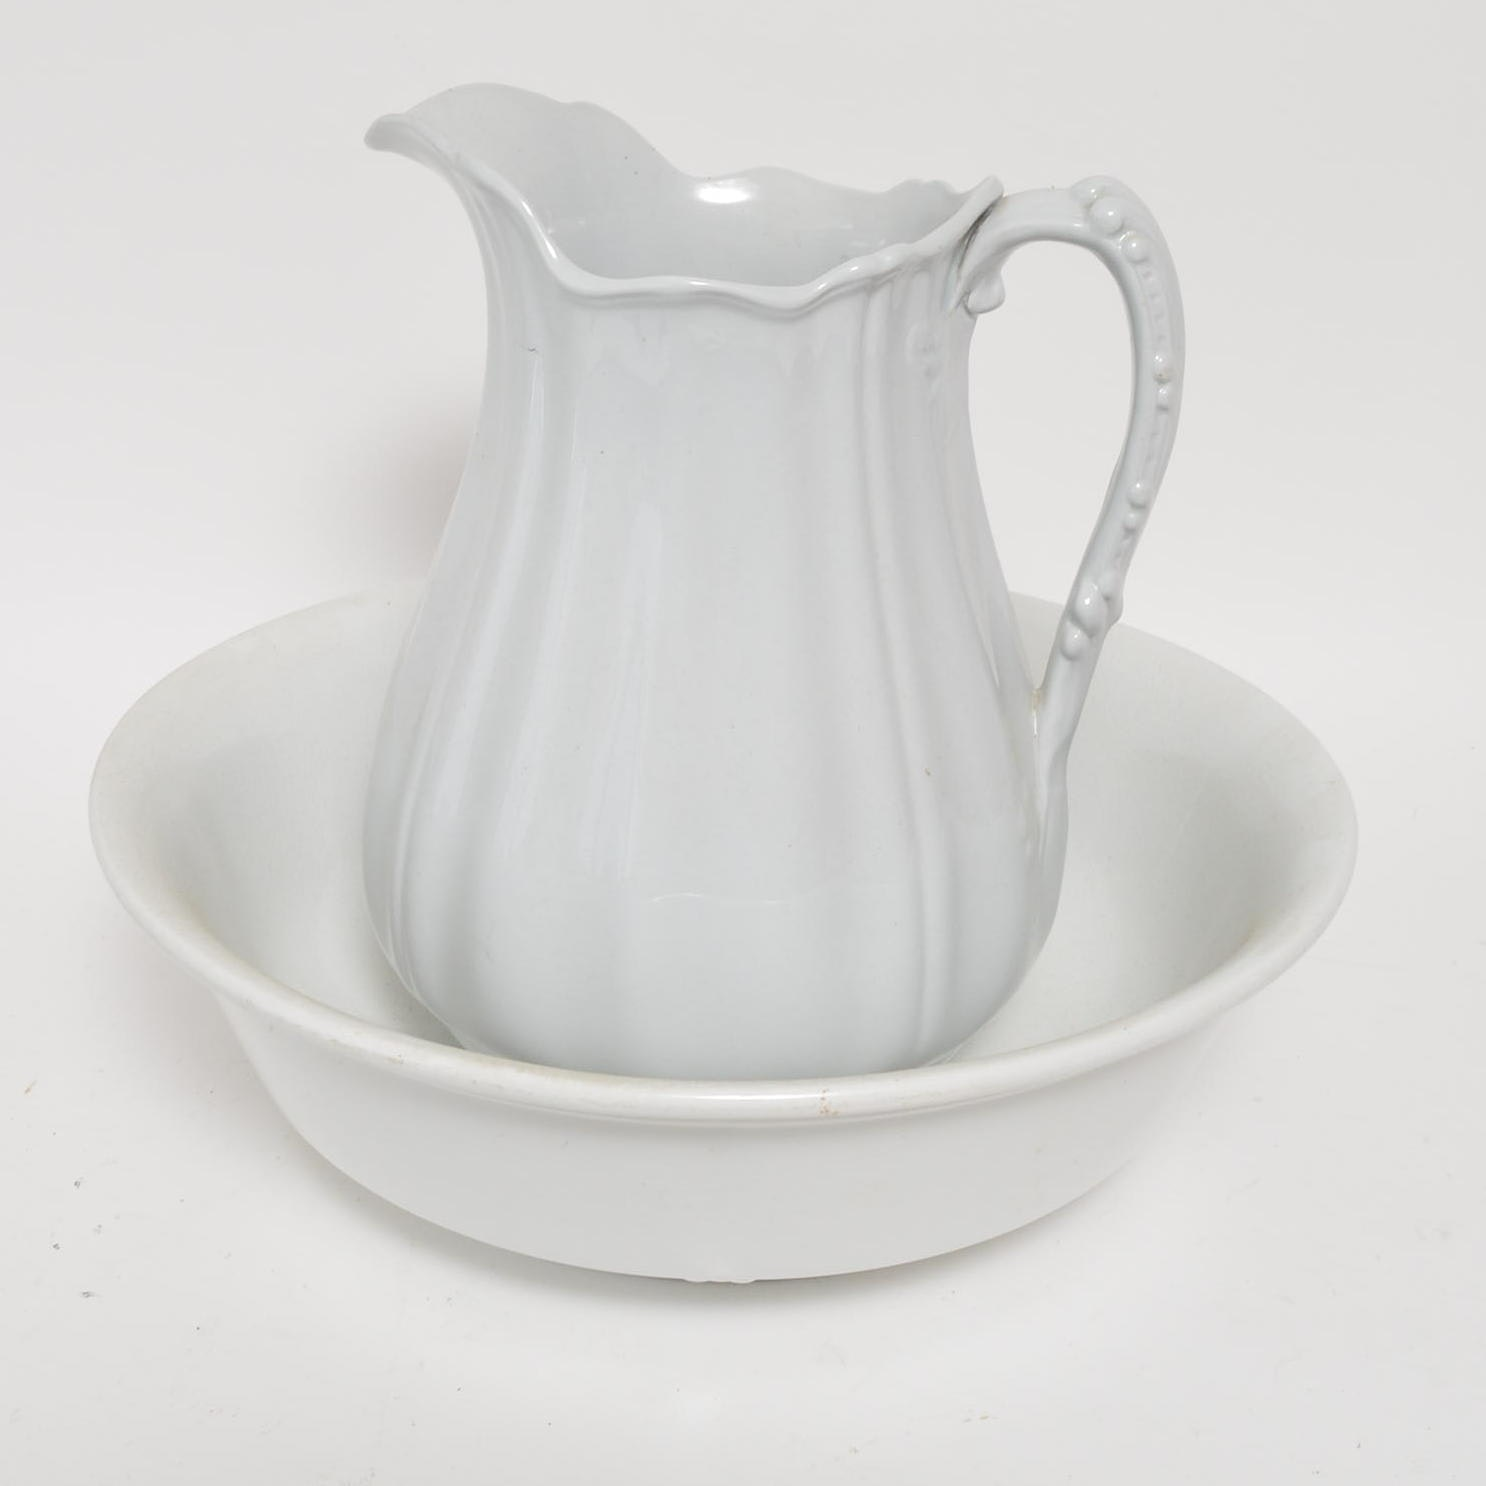 J & G. Meakin Ironstone Pitcher and Basin